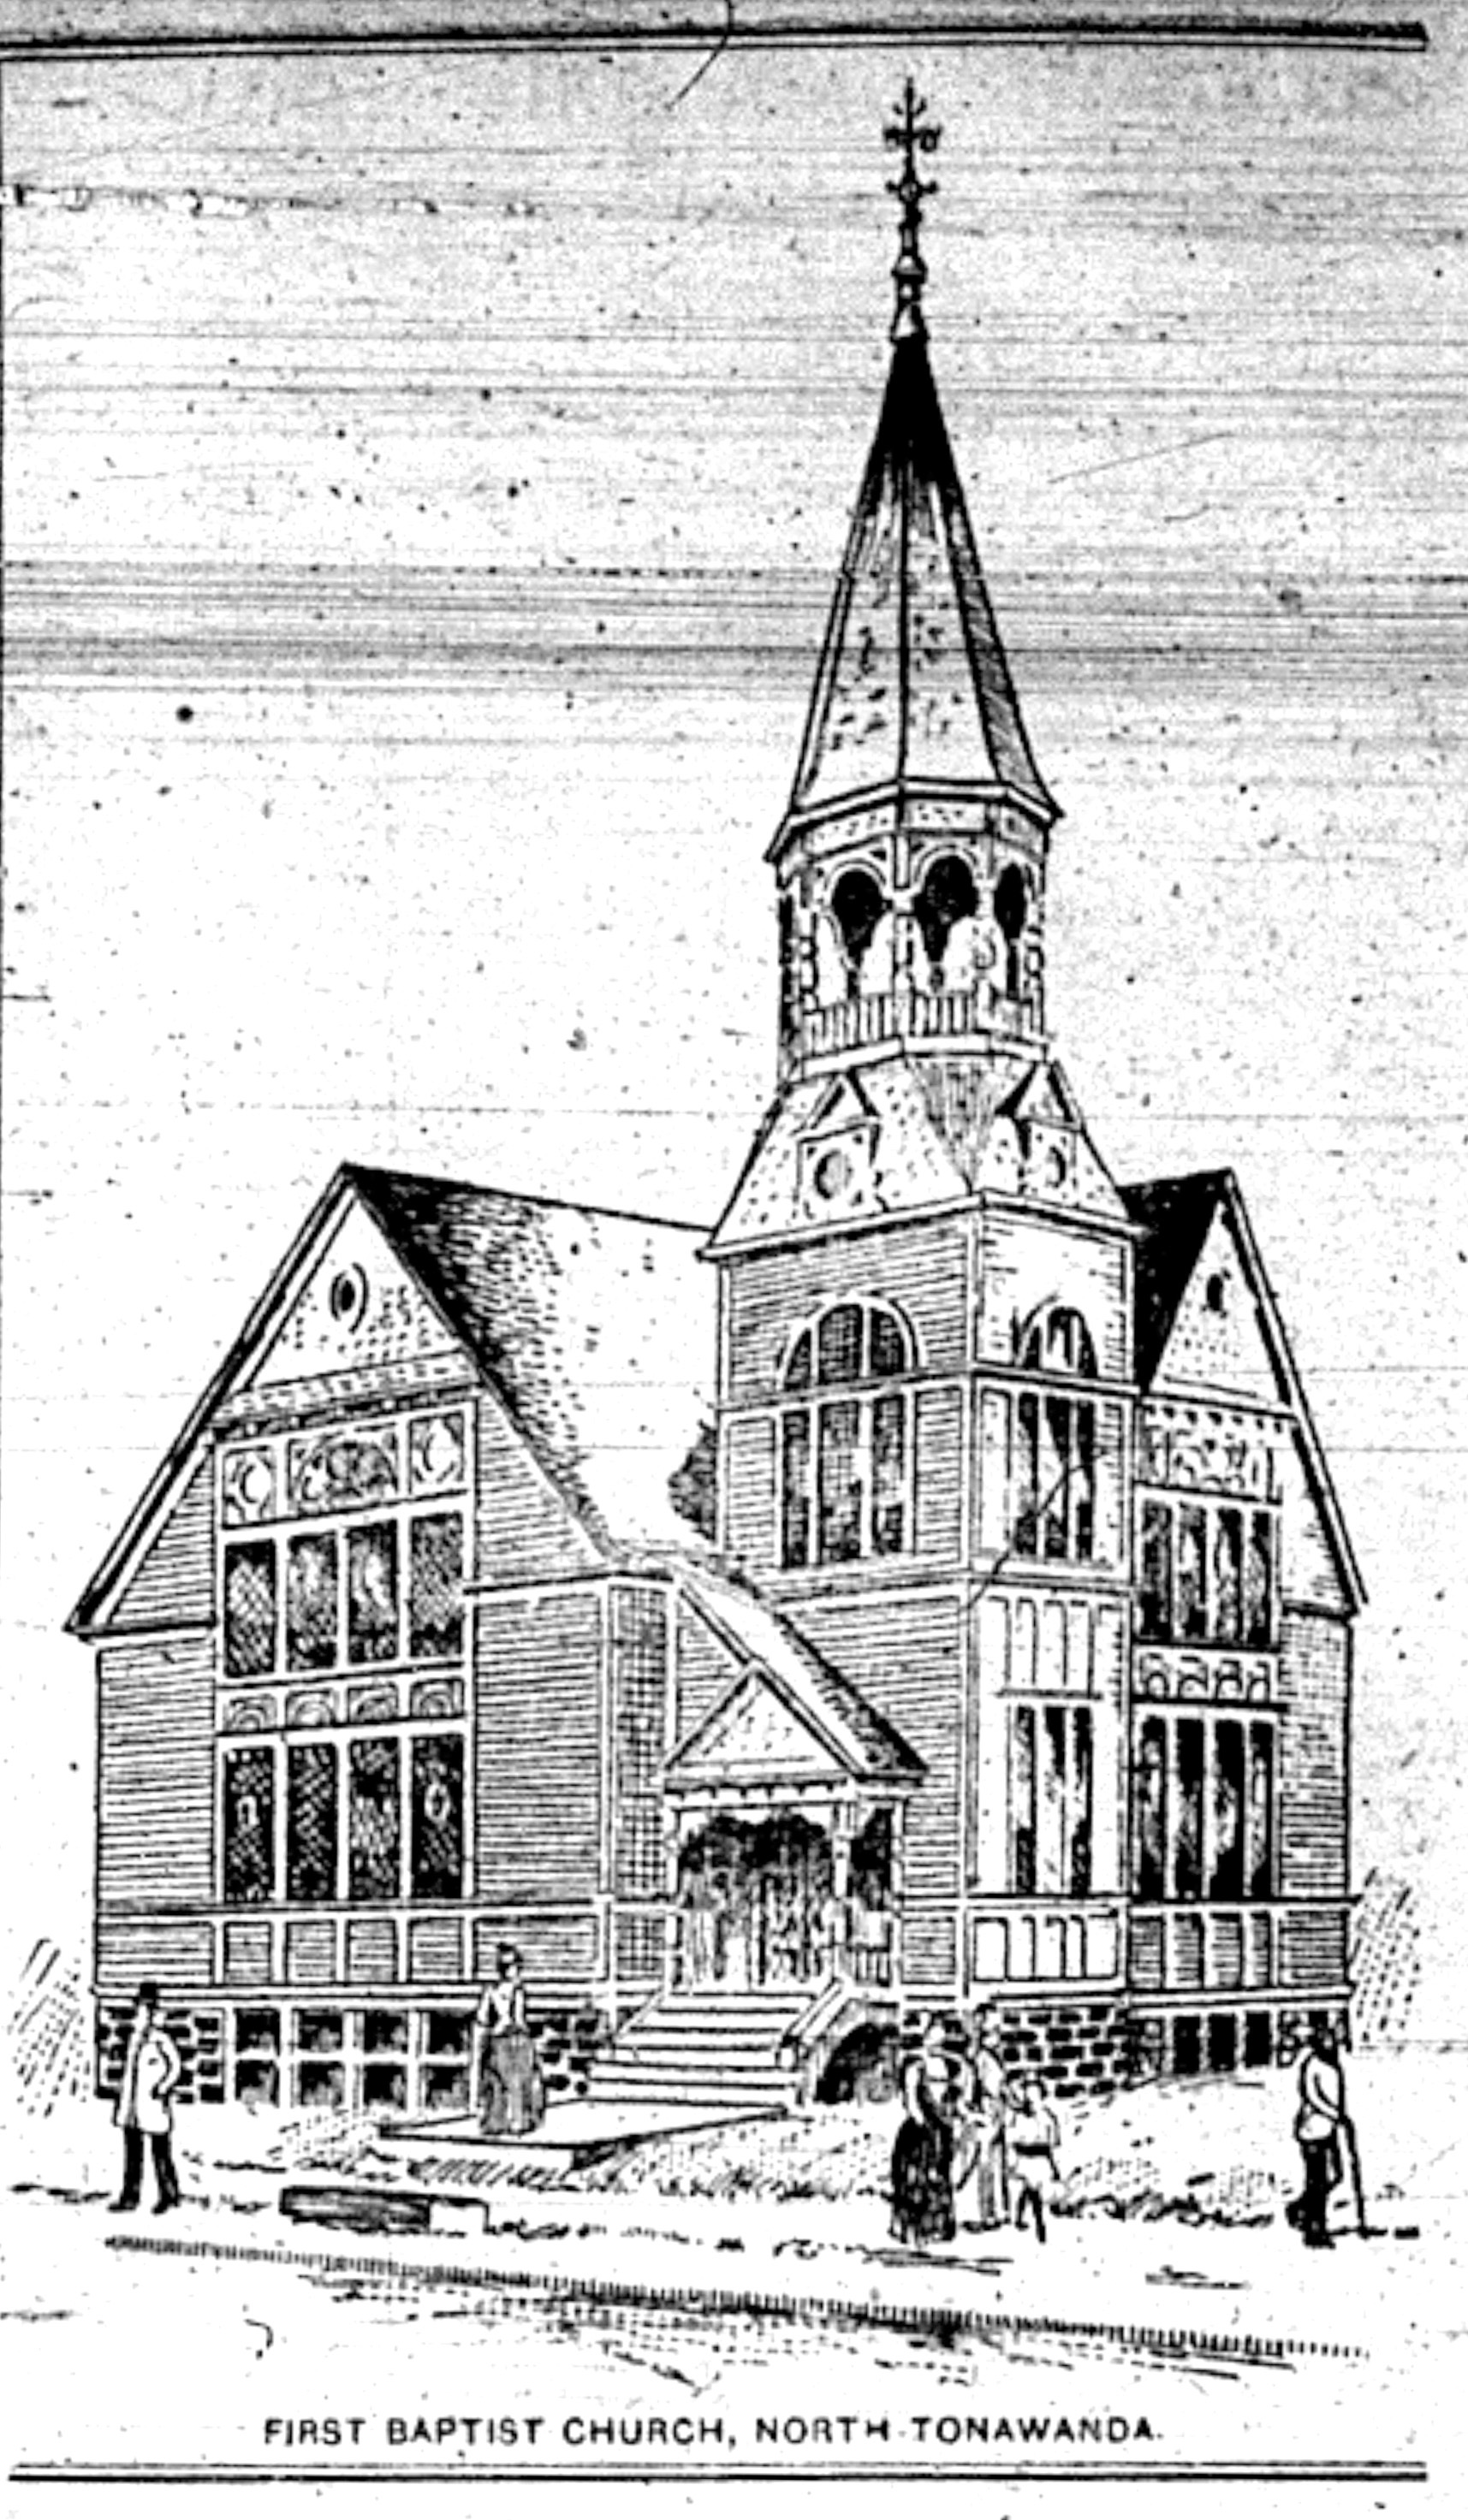 First Baptist Church, illustration (1893-08-05 Tonawanda News).jpg